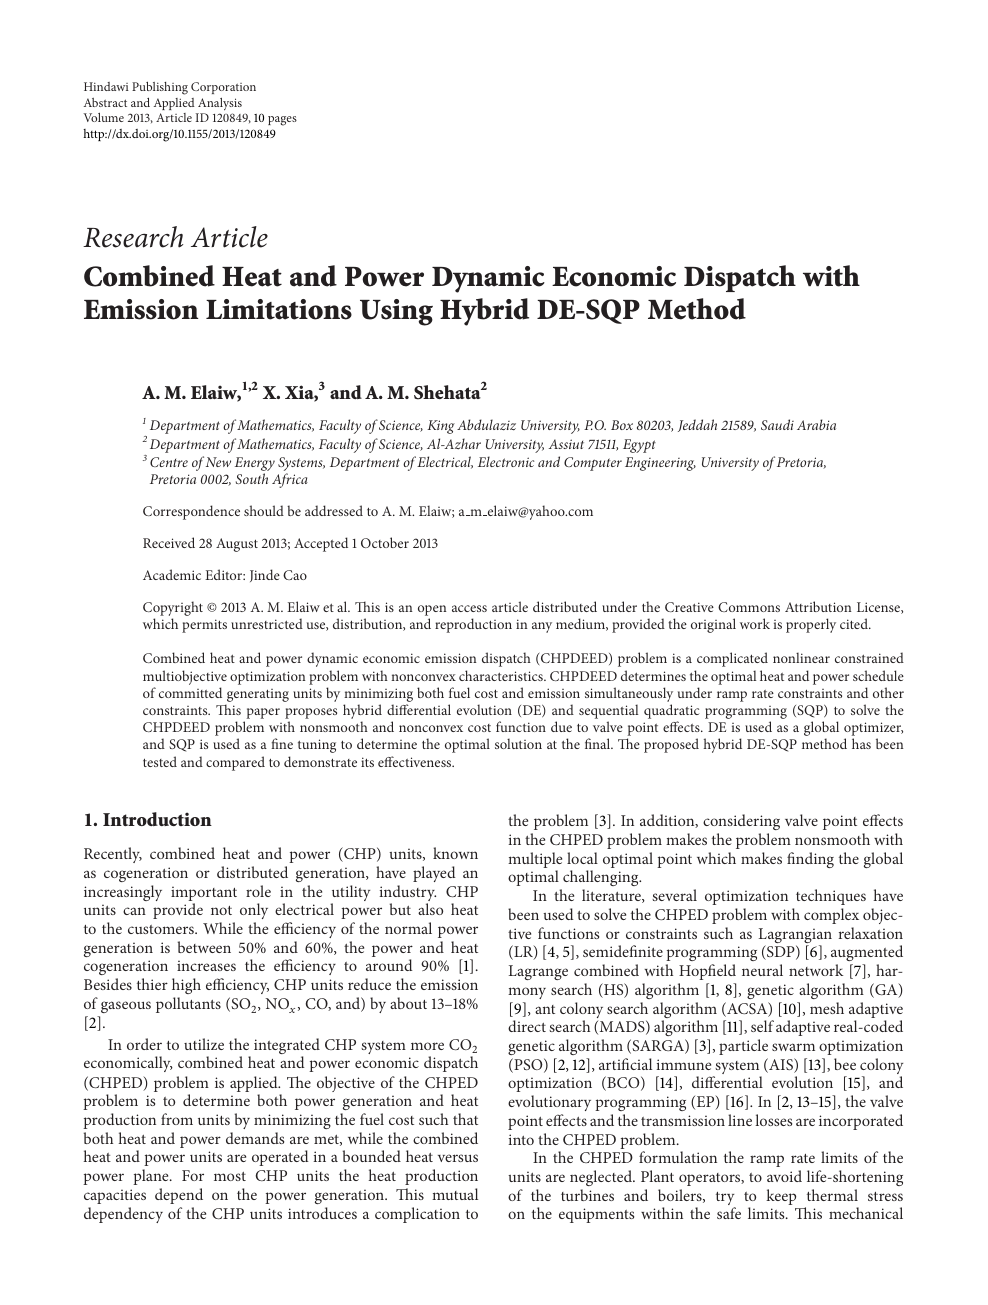 Combined Heat and Power Dynamic Economic Dispatch with